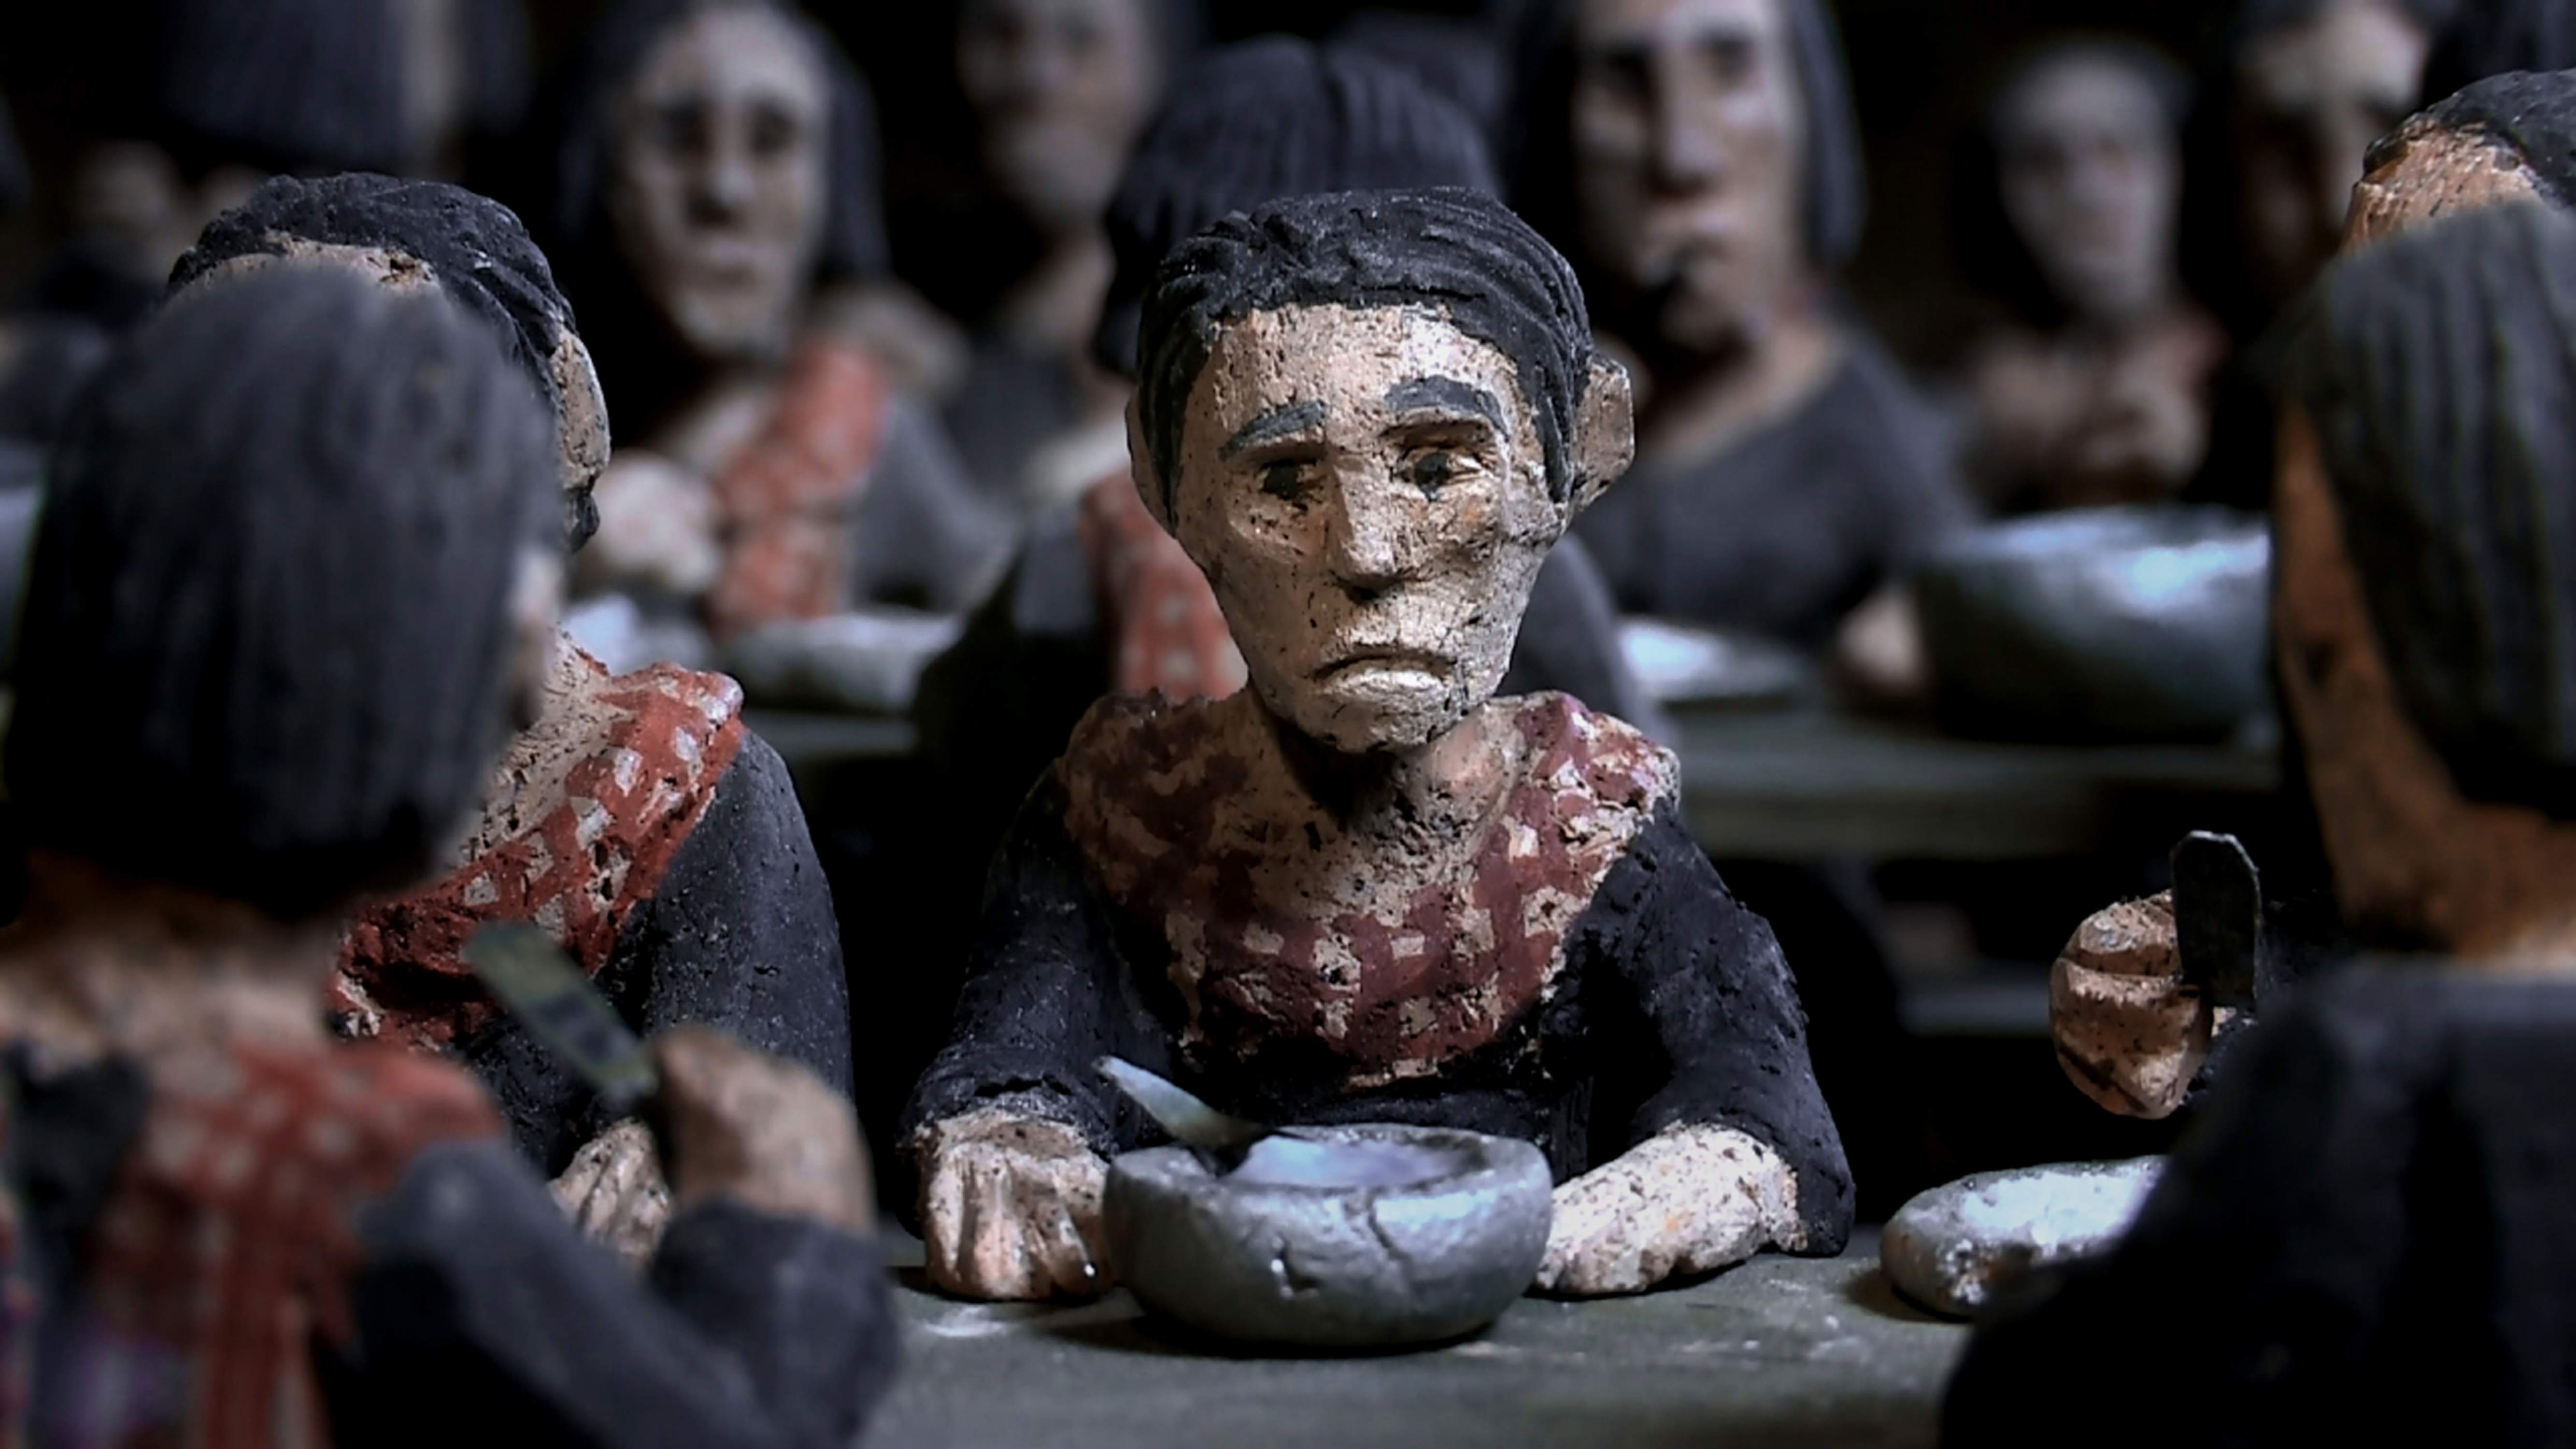 """Director Rithy Panh uses clay figurines to represent Cambodians in his Oscar-nominated film memoir """"The Missing Picture"""". It's about his boyhood memories of living under the Khmer Rouge from 1974 to 1978. Panh lost almost every member of his immediate and"""